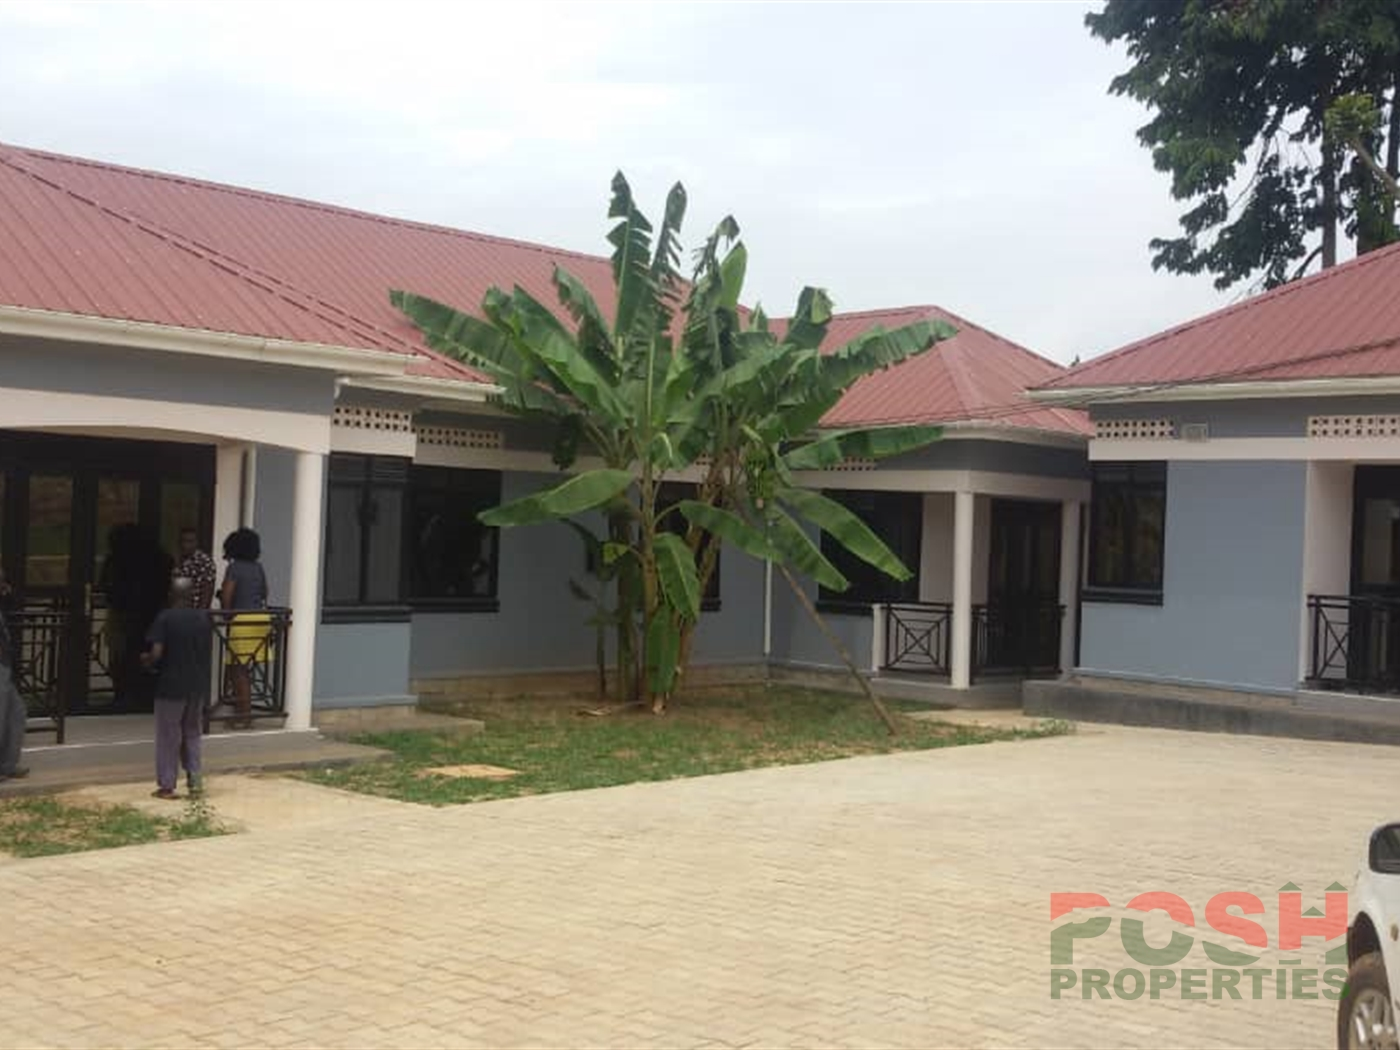 Semi Detached for rent in Bwebajja Wakiso